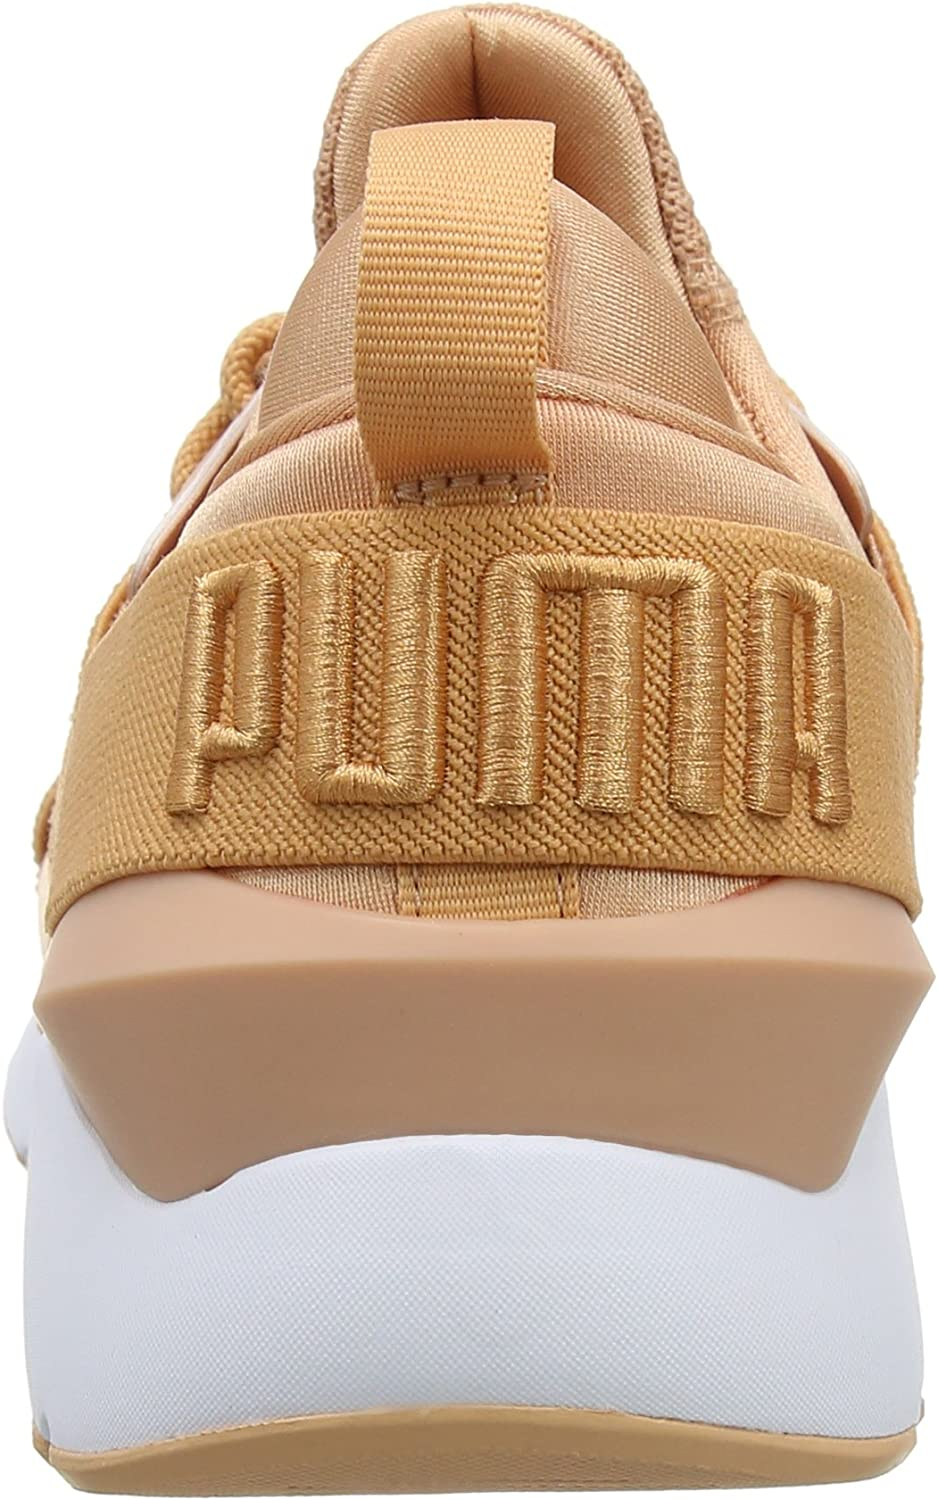 Partina City salvar ajustar  Amazon.com | PUMA Women's Low-Top Sneakers | Fashion Sneakers